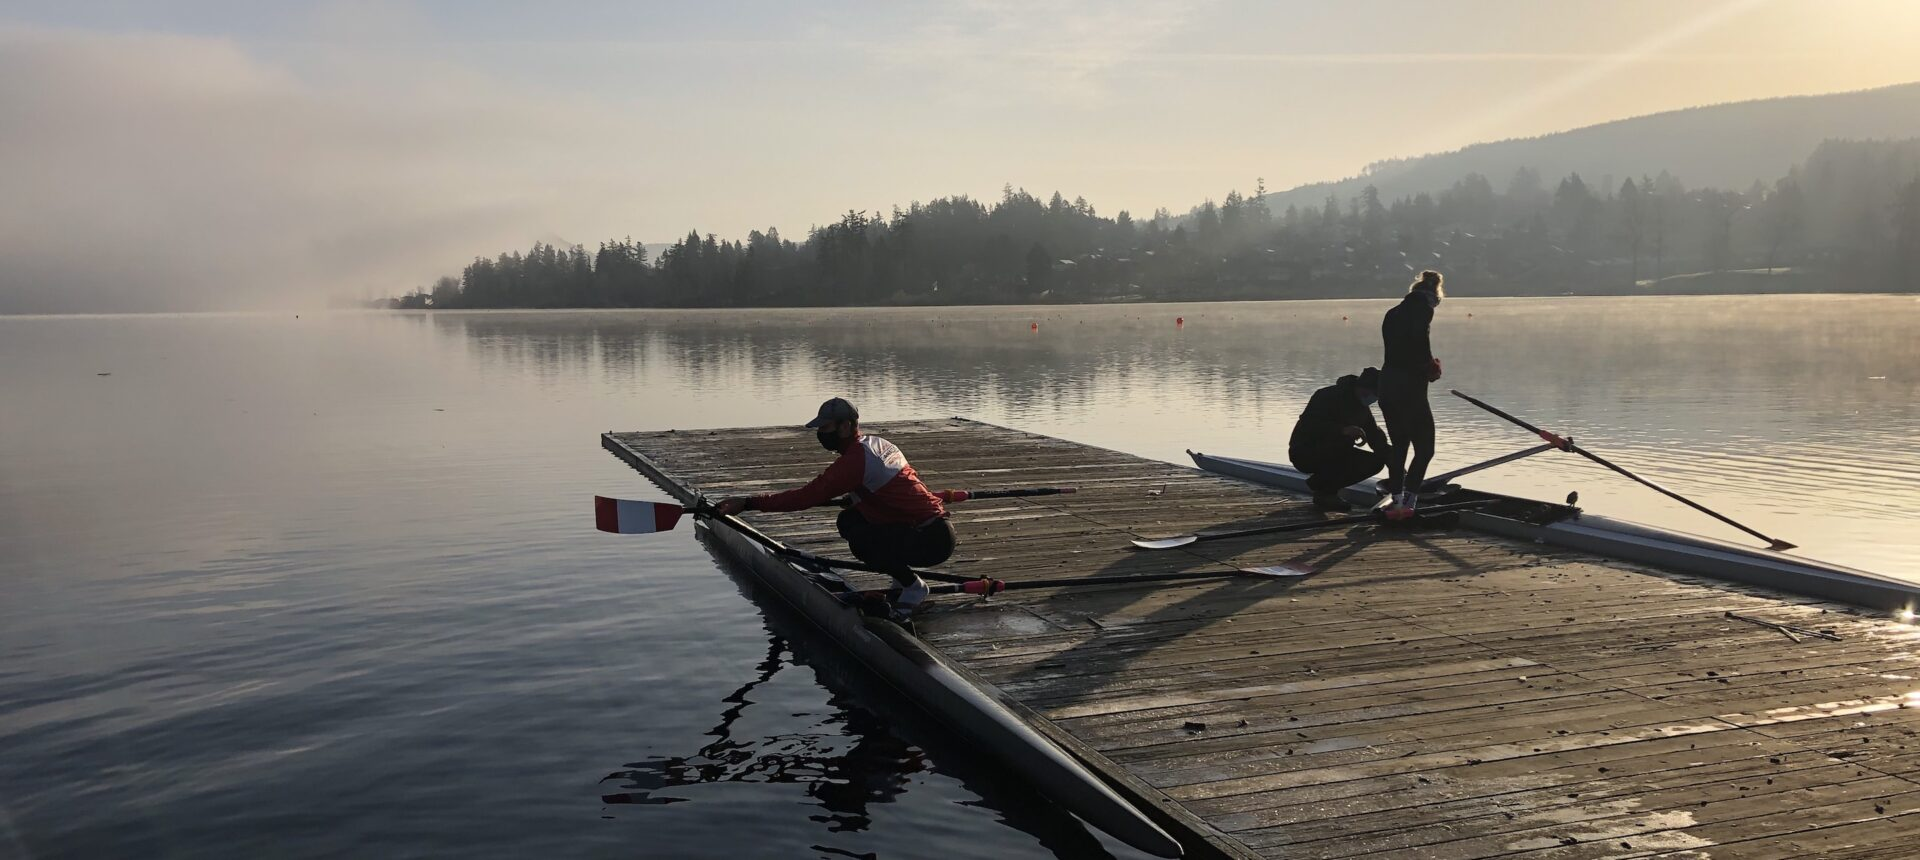 Making strides in Cowichan Valley for future National Team Training Centre